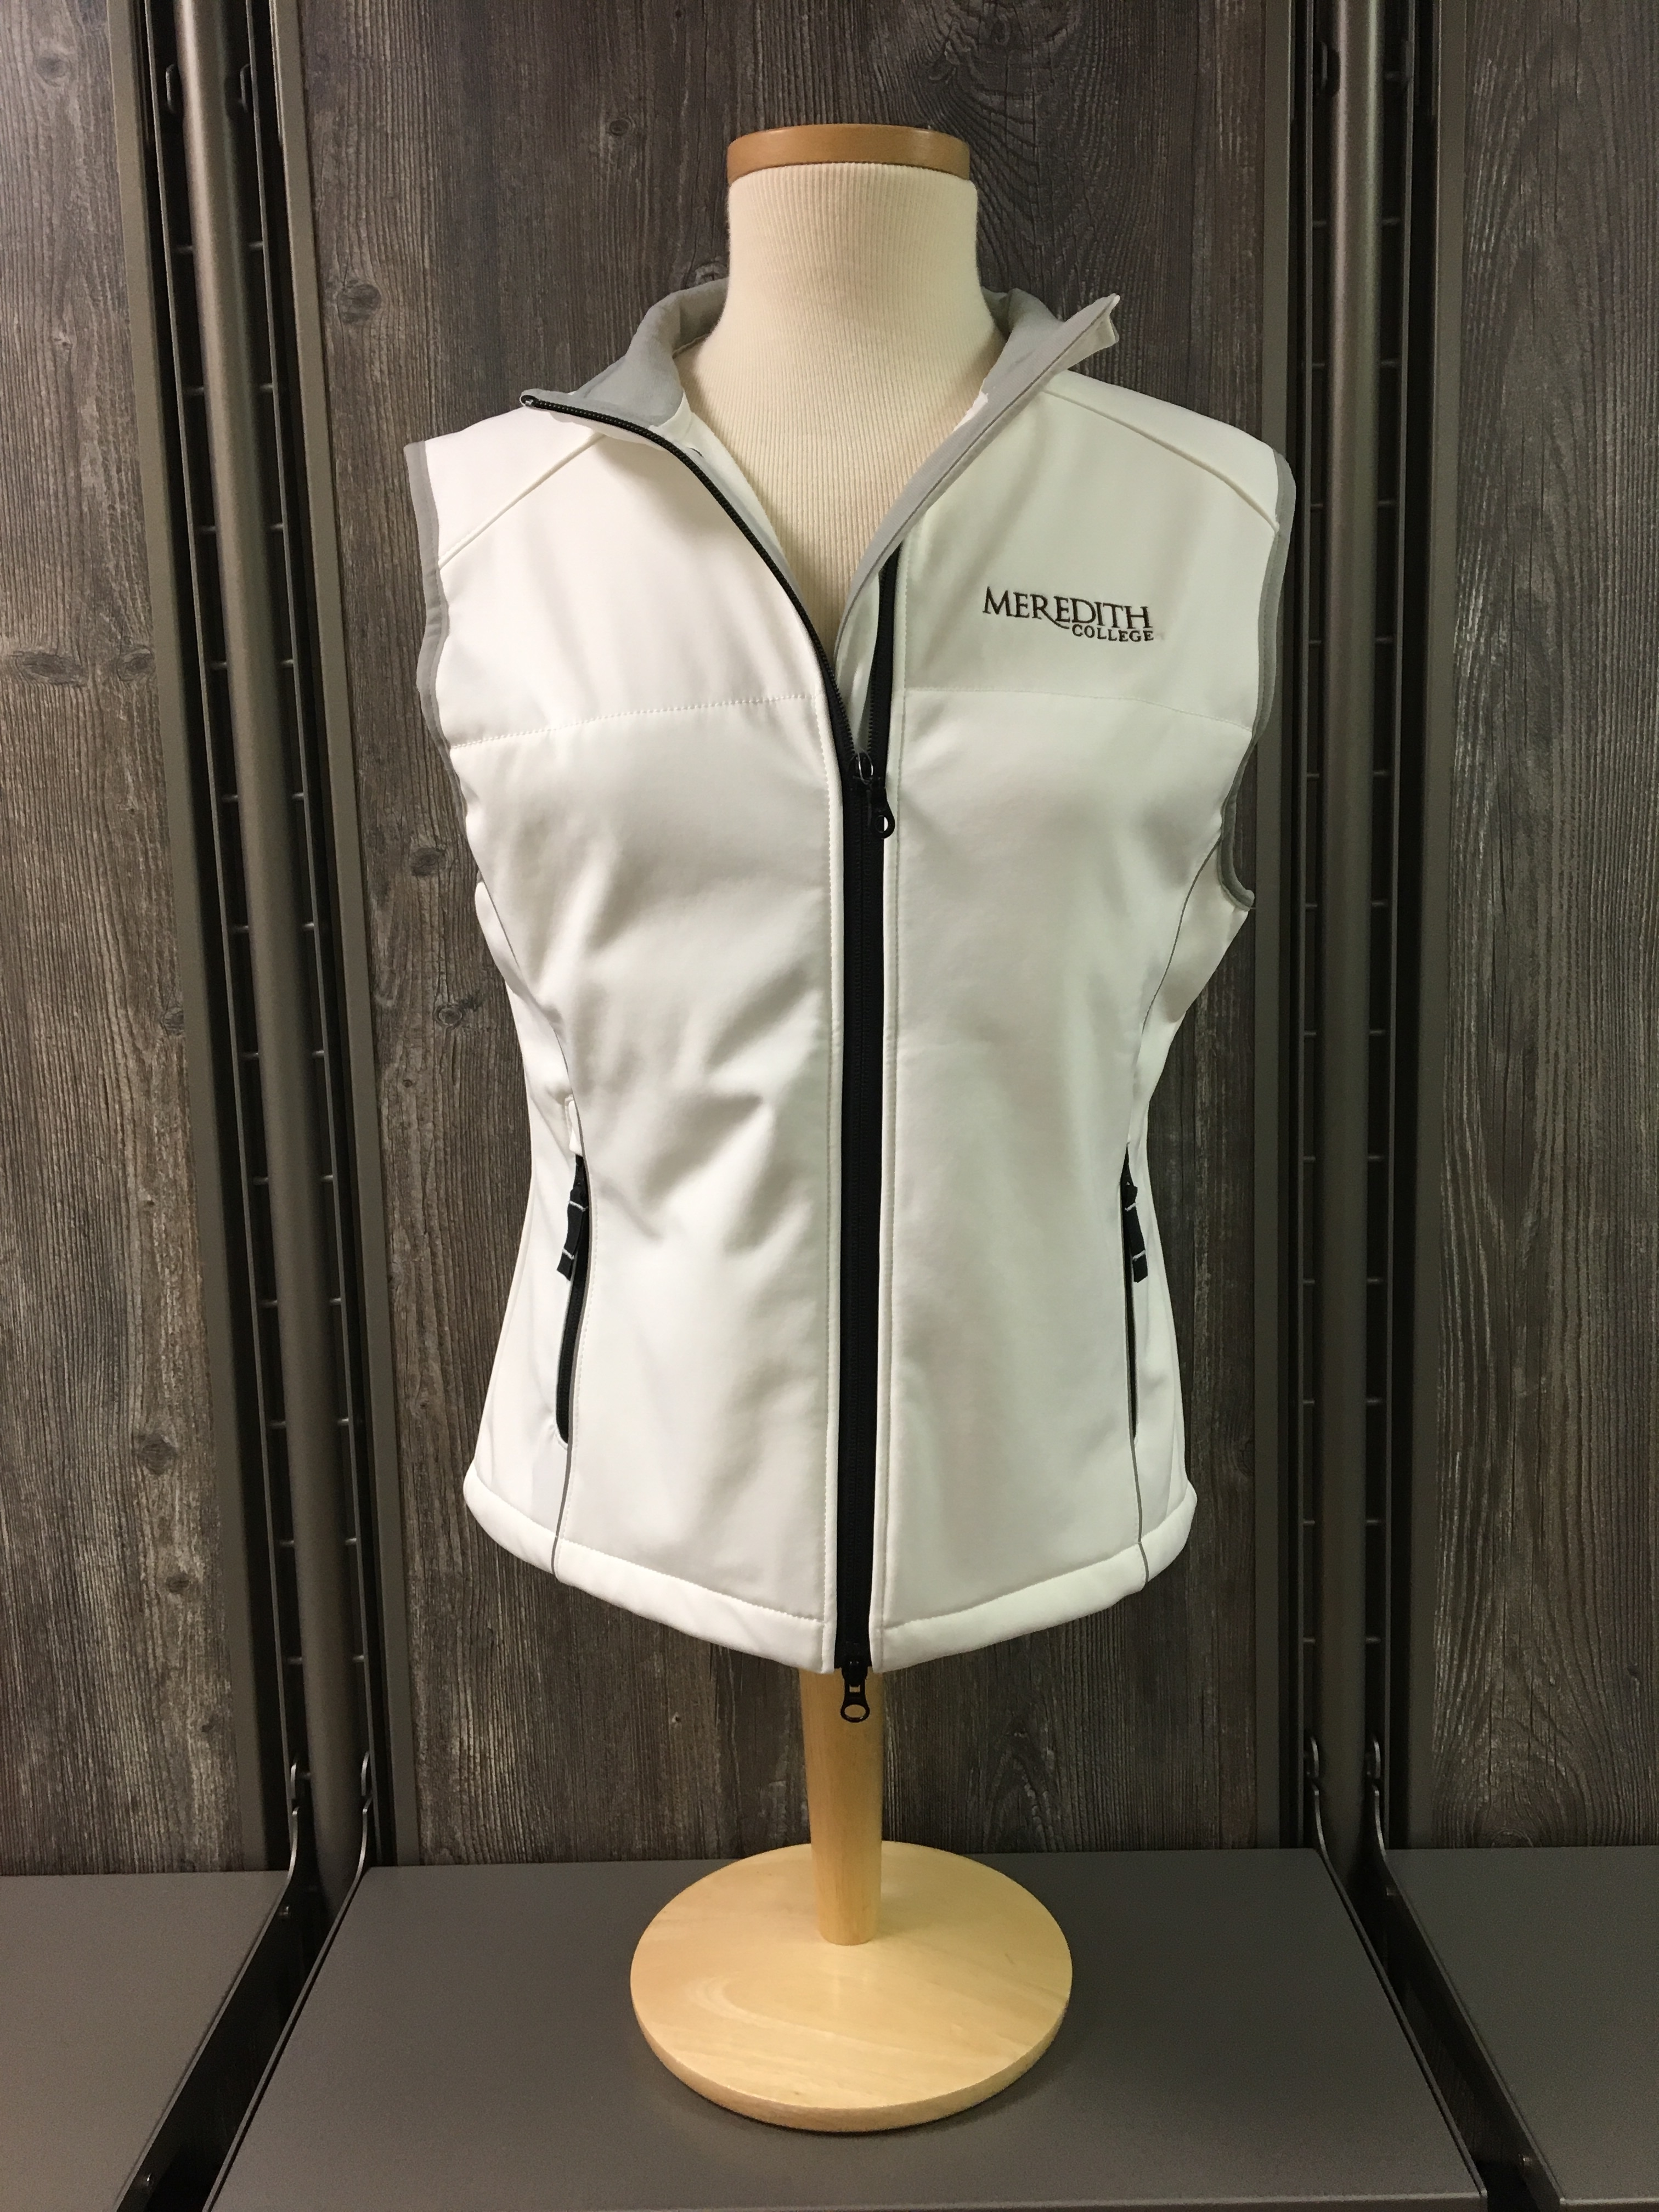 Image for the Women's Softshell Vest Off-White Cutter & Buck product